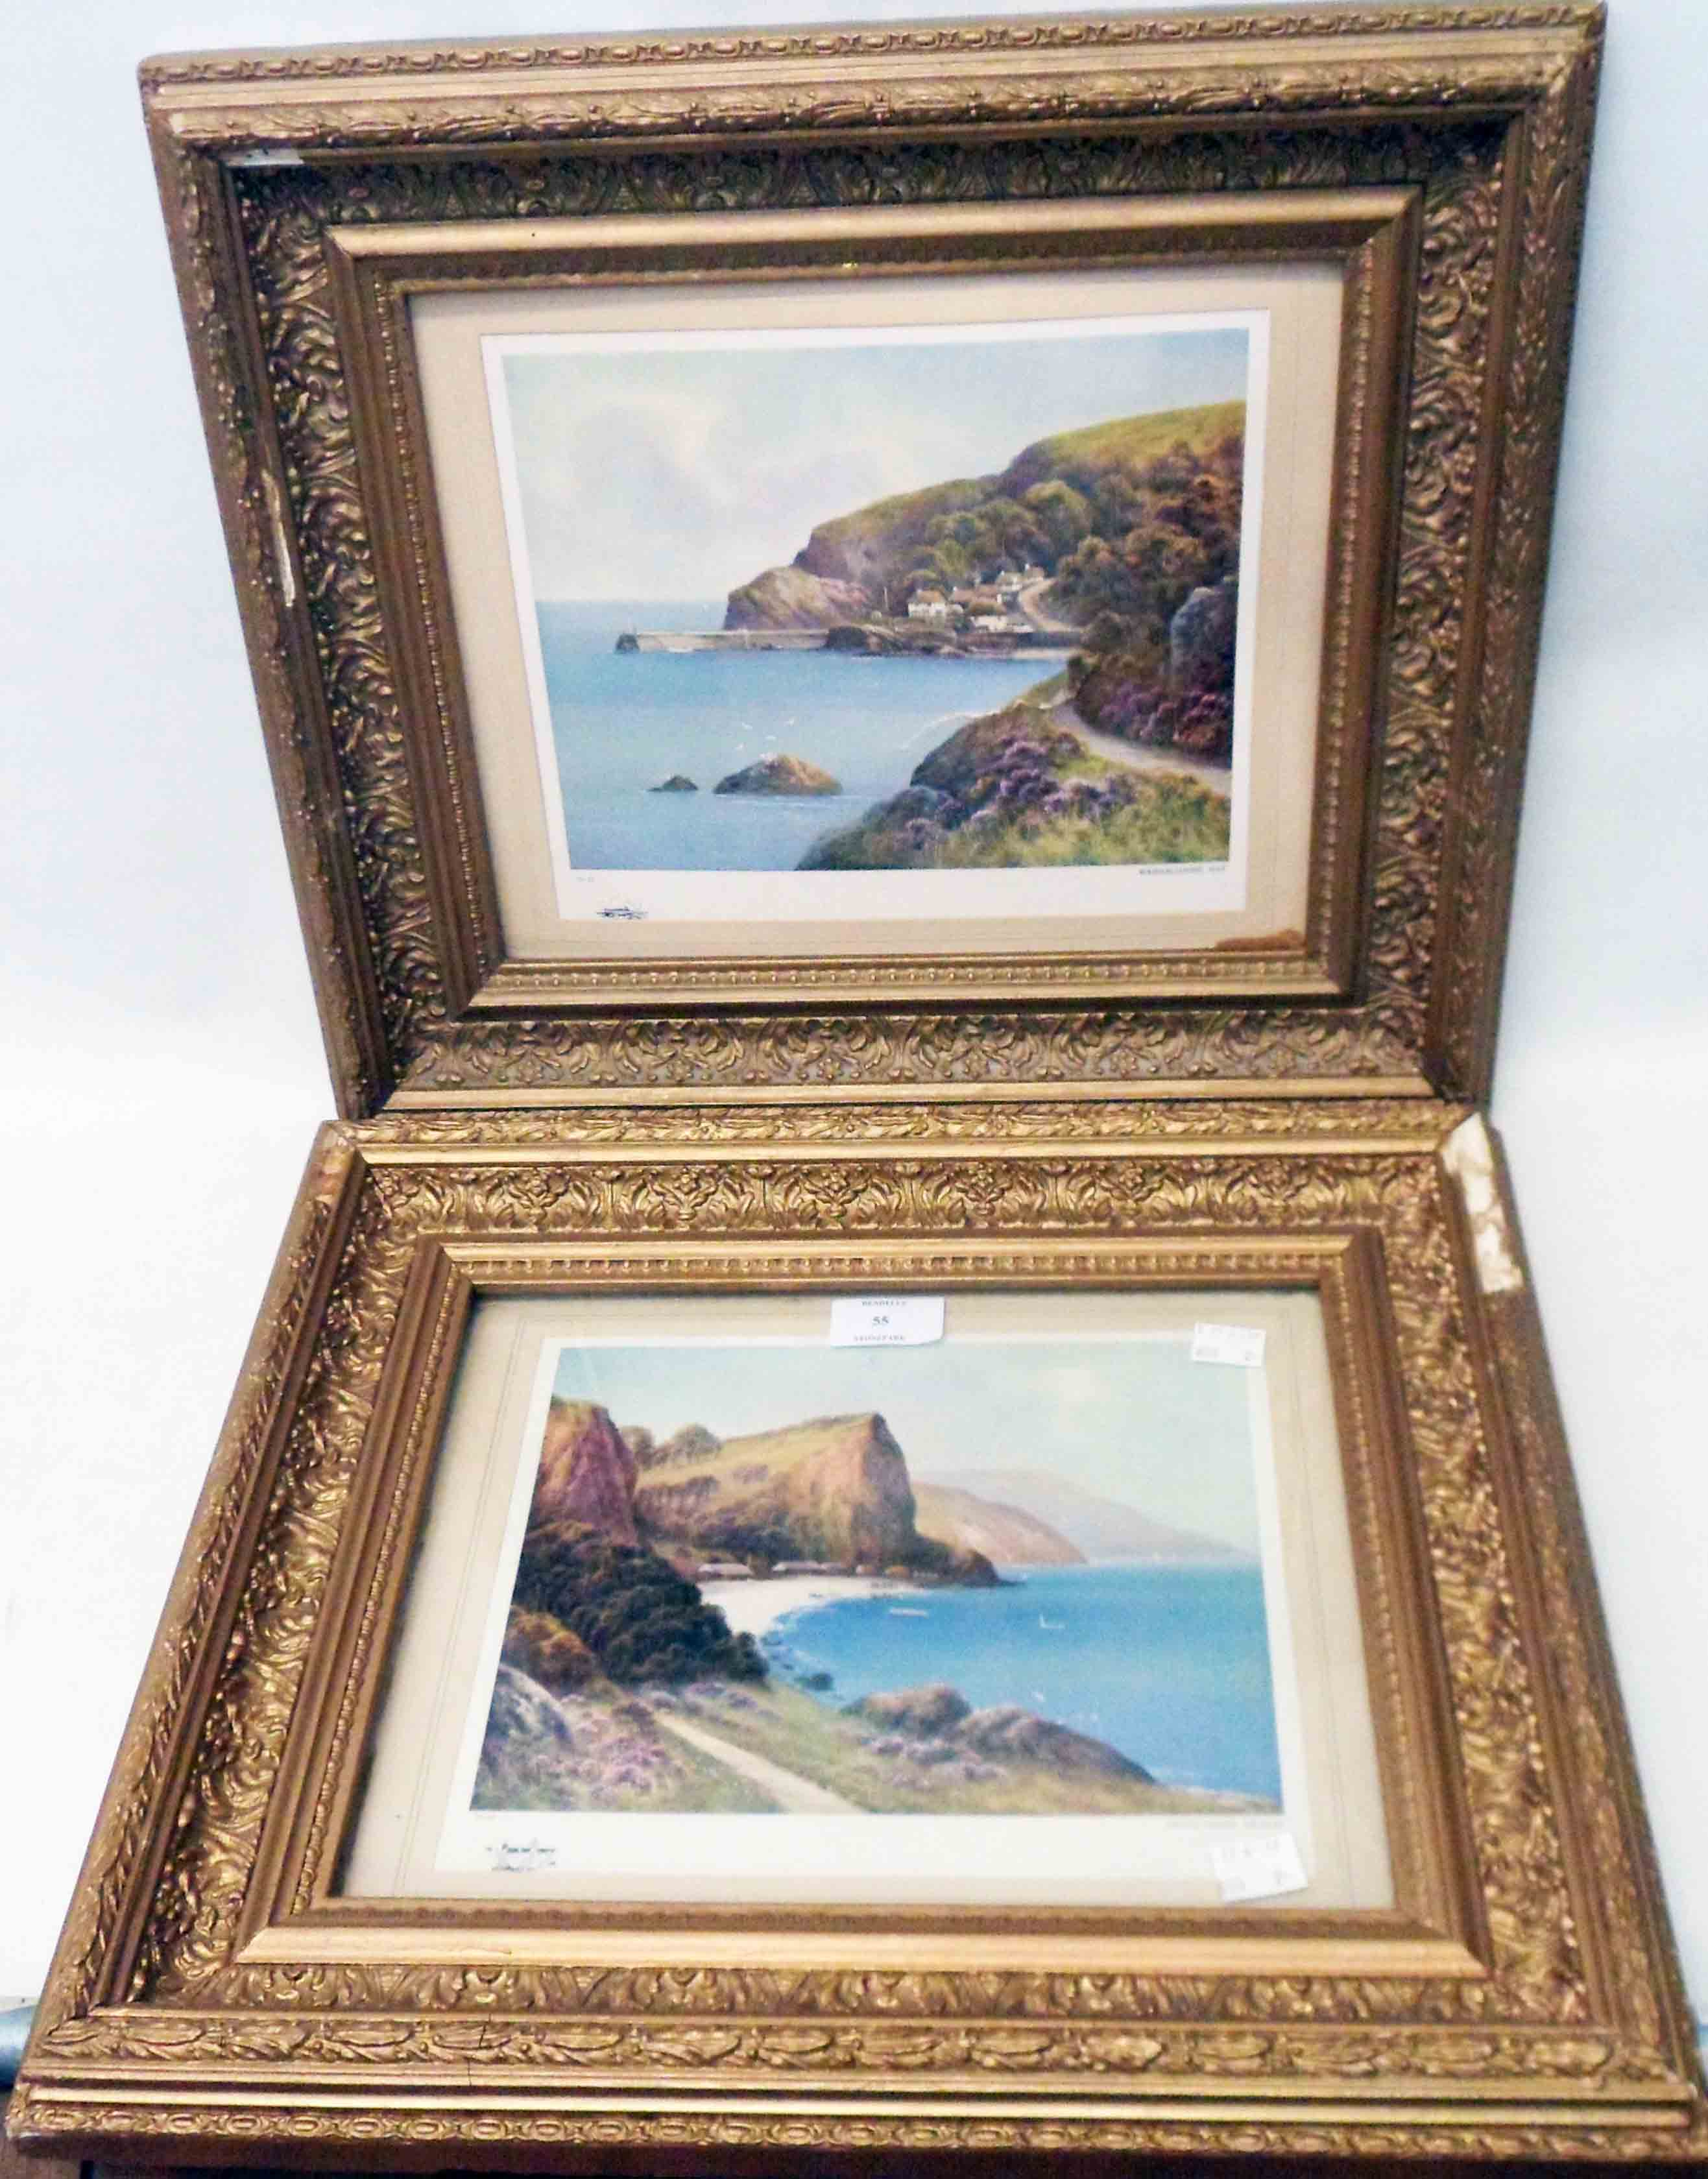 Two framed prints, one entitled Babbacombe Bay, the other Oddicombe Beach - damage to both